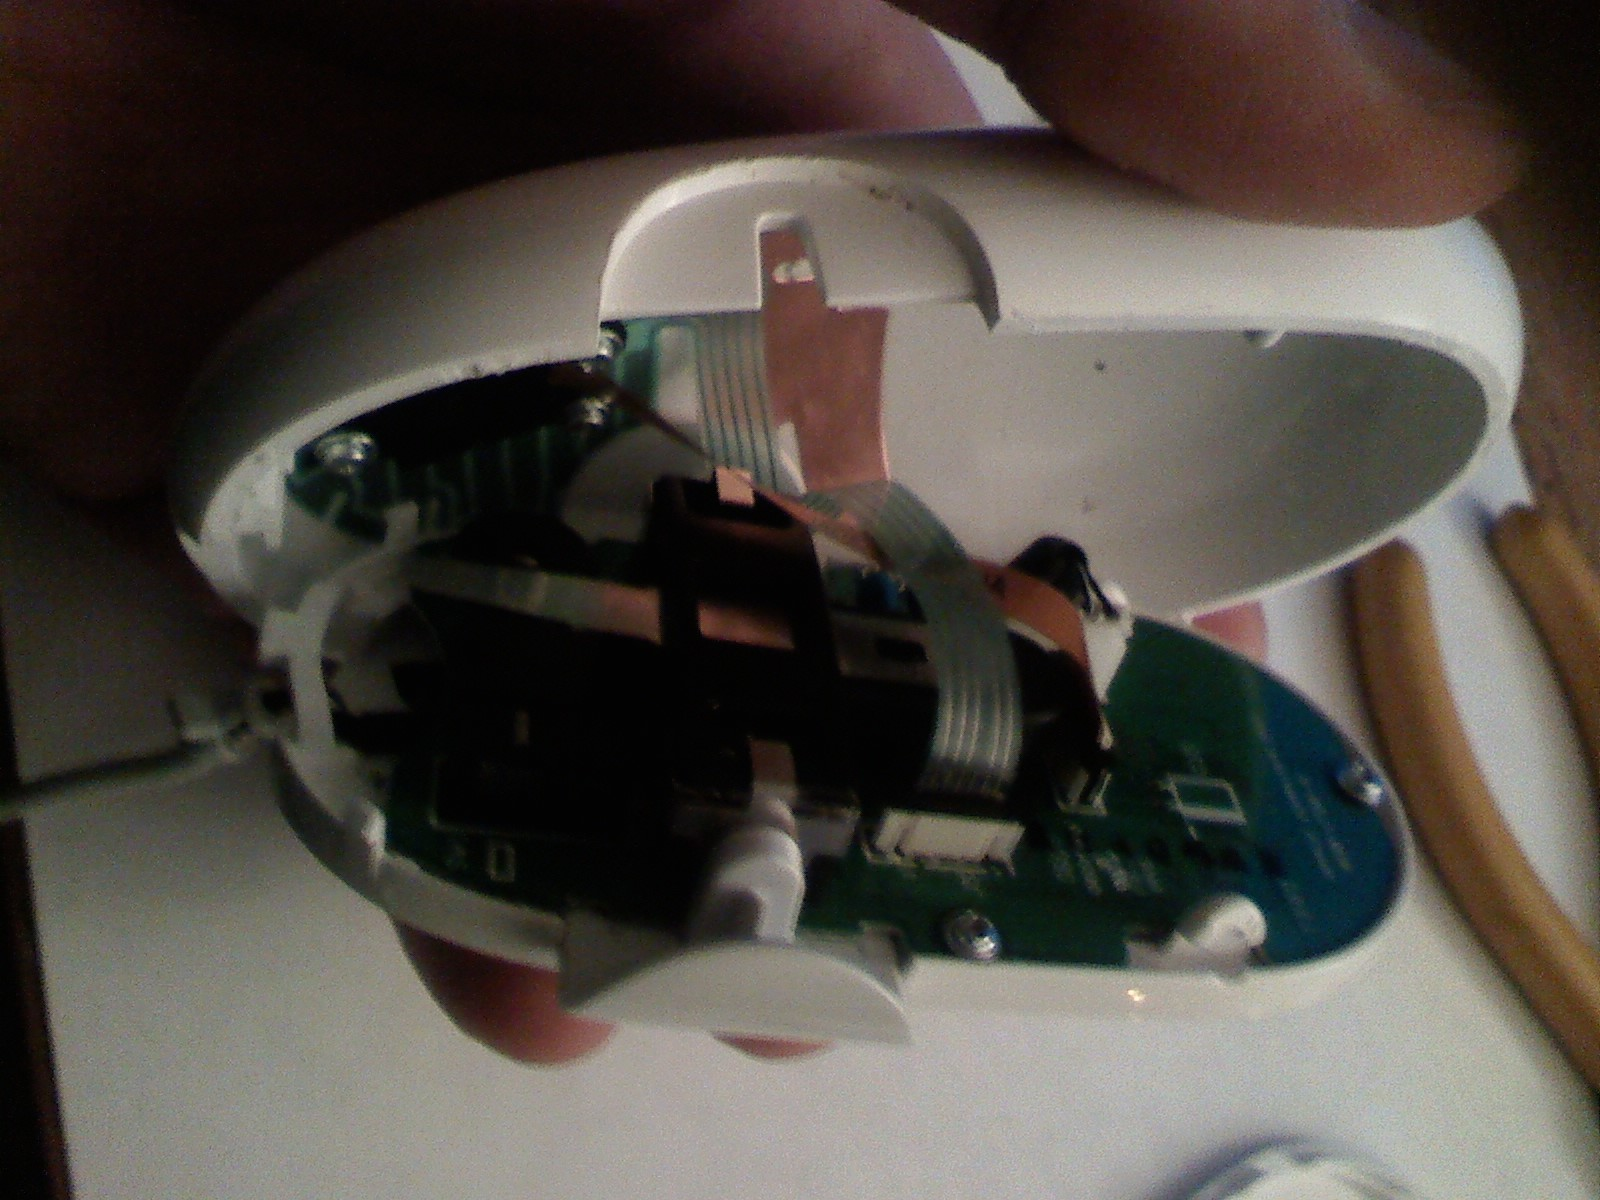 Picture of Opening the Mouse - Be Careful of the Flat Cables and Side Buttons